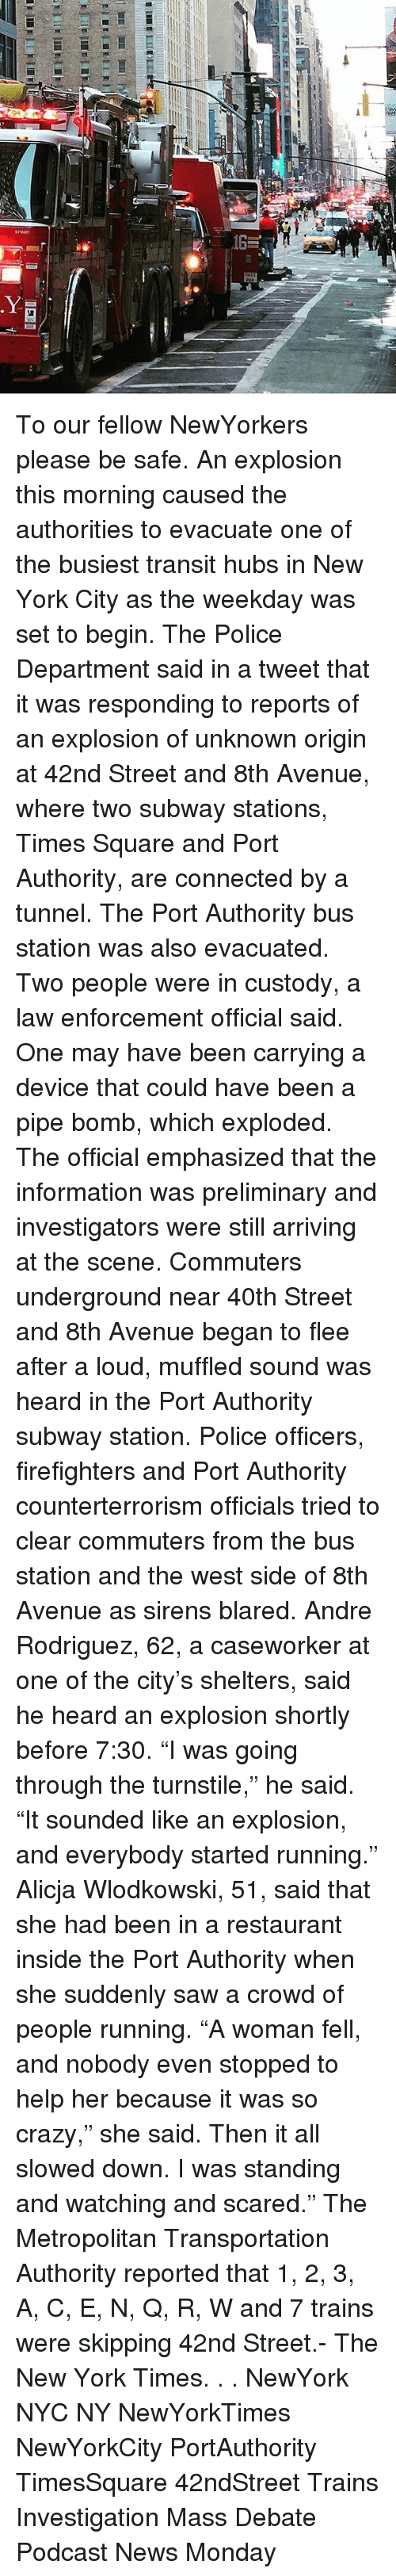 "Crazy, Memes, and New York: sTI6o01 To our fellow NewYorkers please be safe. An explosion this morning caused the authorities to evacuate one of the busiest transit hubs in New York City as the weekday was set to begin. The Police Department said in a tweet that it was responding to reports of an explosion of unknown origin at 42nd Street and 8th Avenue, where two subway stations, Times Square and Port Authority, are connected by a tunnel. The Port Authority bus station was also evacuated. Two people were in custody, a law enforcement official said. One may have been carrying a device that could have been a pipe bomb, which exploded. The official emphasized that the information was preliminary and investigators were still arriving at the scene. Commuters underground near 40th Street and 8th Avenue began to flee after a loud, muffled sound was heard in the Port Authority subway station. Police officers, firefighters and Port Authority counterterrorism officials tried to clear commuters from the bus station and the west side of 8th Avenue as sirens blared. Andre Rodriguez, 62, a caseworker at one of the city's shelters, said he heard an explosion shortly before 7:30. ""I was going through the turnstile,"" he said. ""It sounded like an explosion, and everybody started running."" Alicja Wlodkowski, 51, said that she had been in a restaurant inside the Port Authority when she suddenly saw a crowd of people running. ""A woman fell, and nobody even stopped to help her because it was so crazy,"" she said. Then it all slowed down. I was standing and watching and scared."" The Metropolitan Transportation Authority reported that 1, 2, 3, A, C, E, N, Q, R, W and 7 trains were skipping 42nd Street.- The New York Times. . . NewYork NYC NY NewYorkTimes NewYorkCity PortAuthority TimesSquare 42ndStreet Trains Investigation Mass Debate Podcast News Monday"